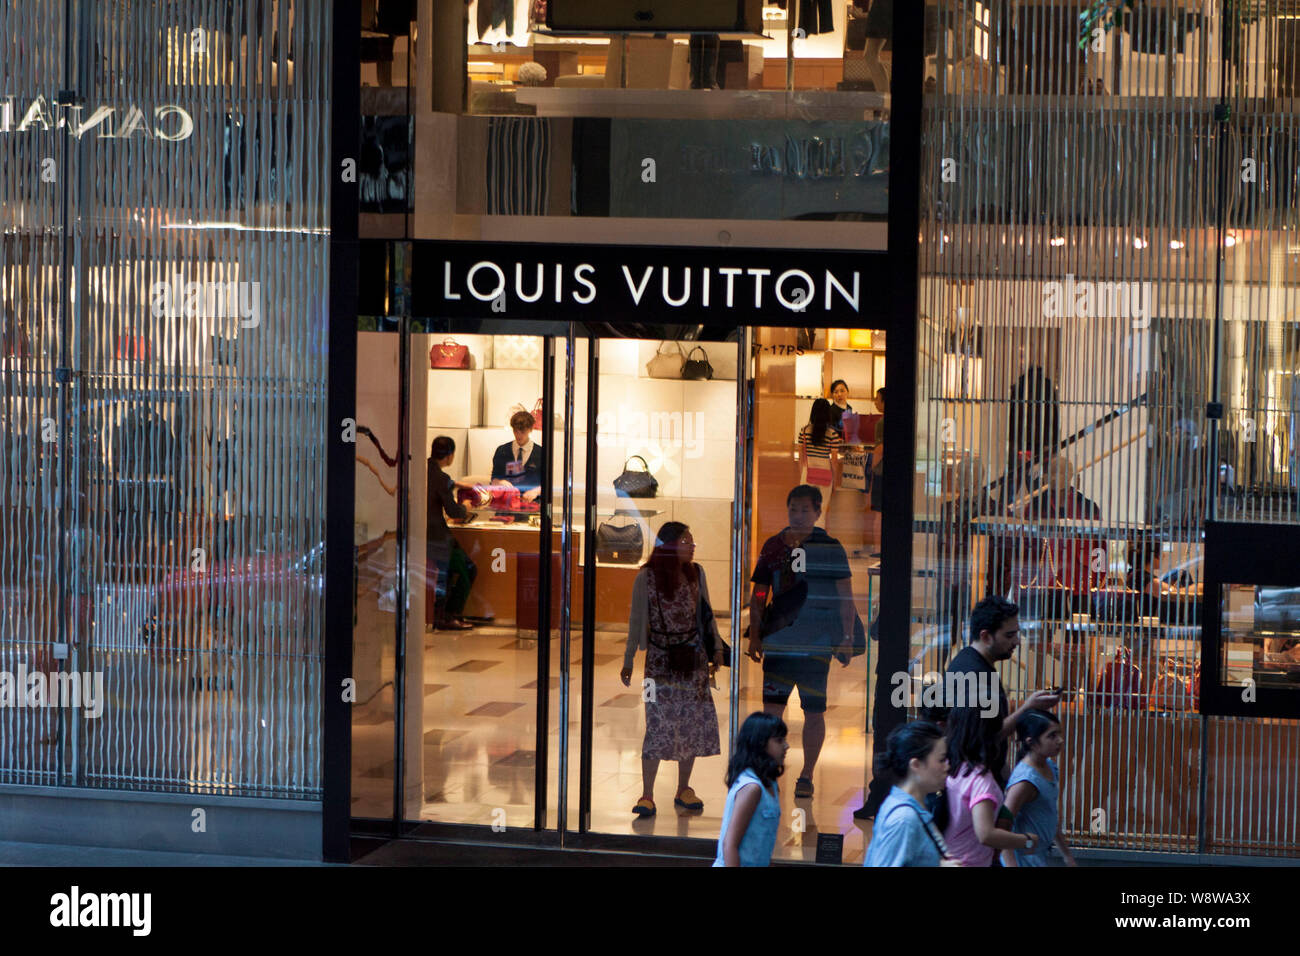 ad8657254ce A Louis Vuitton Shop Stock Photos & A Louis Vuitton Shop Stock ...